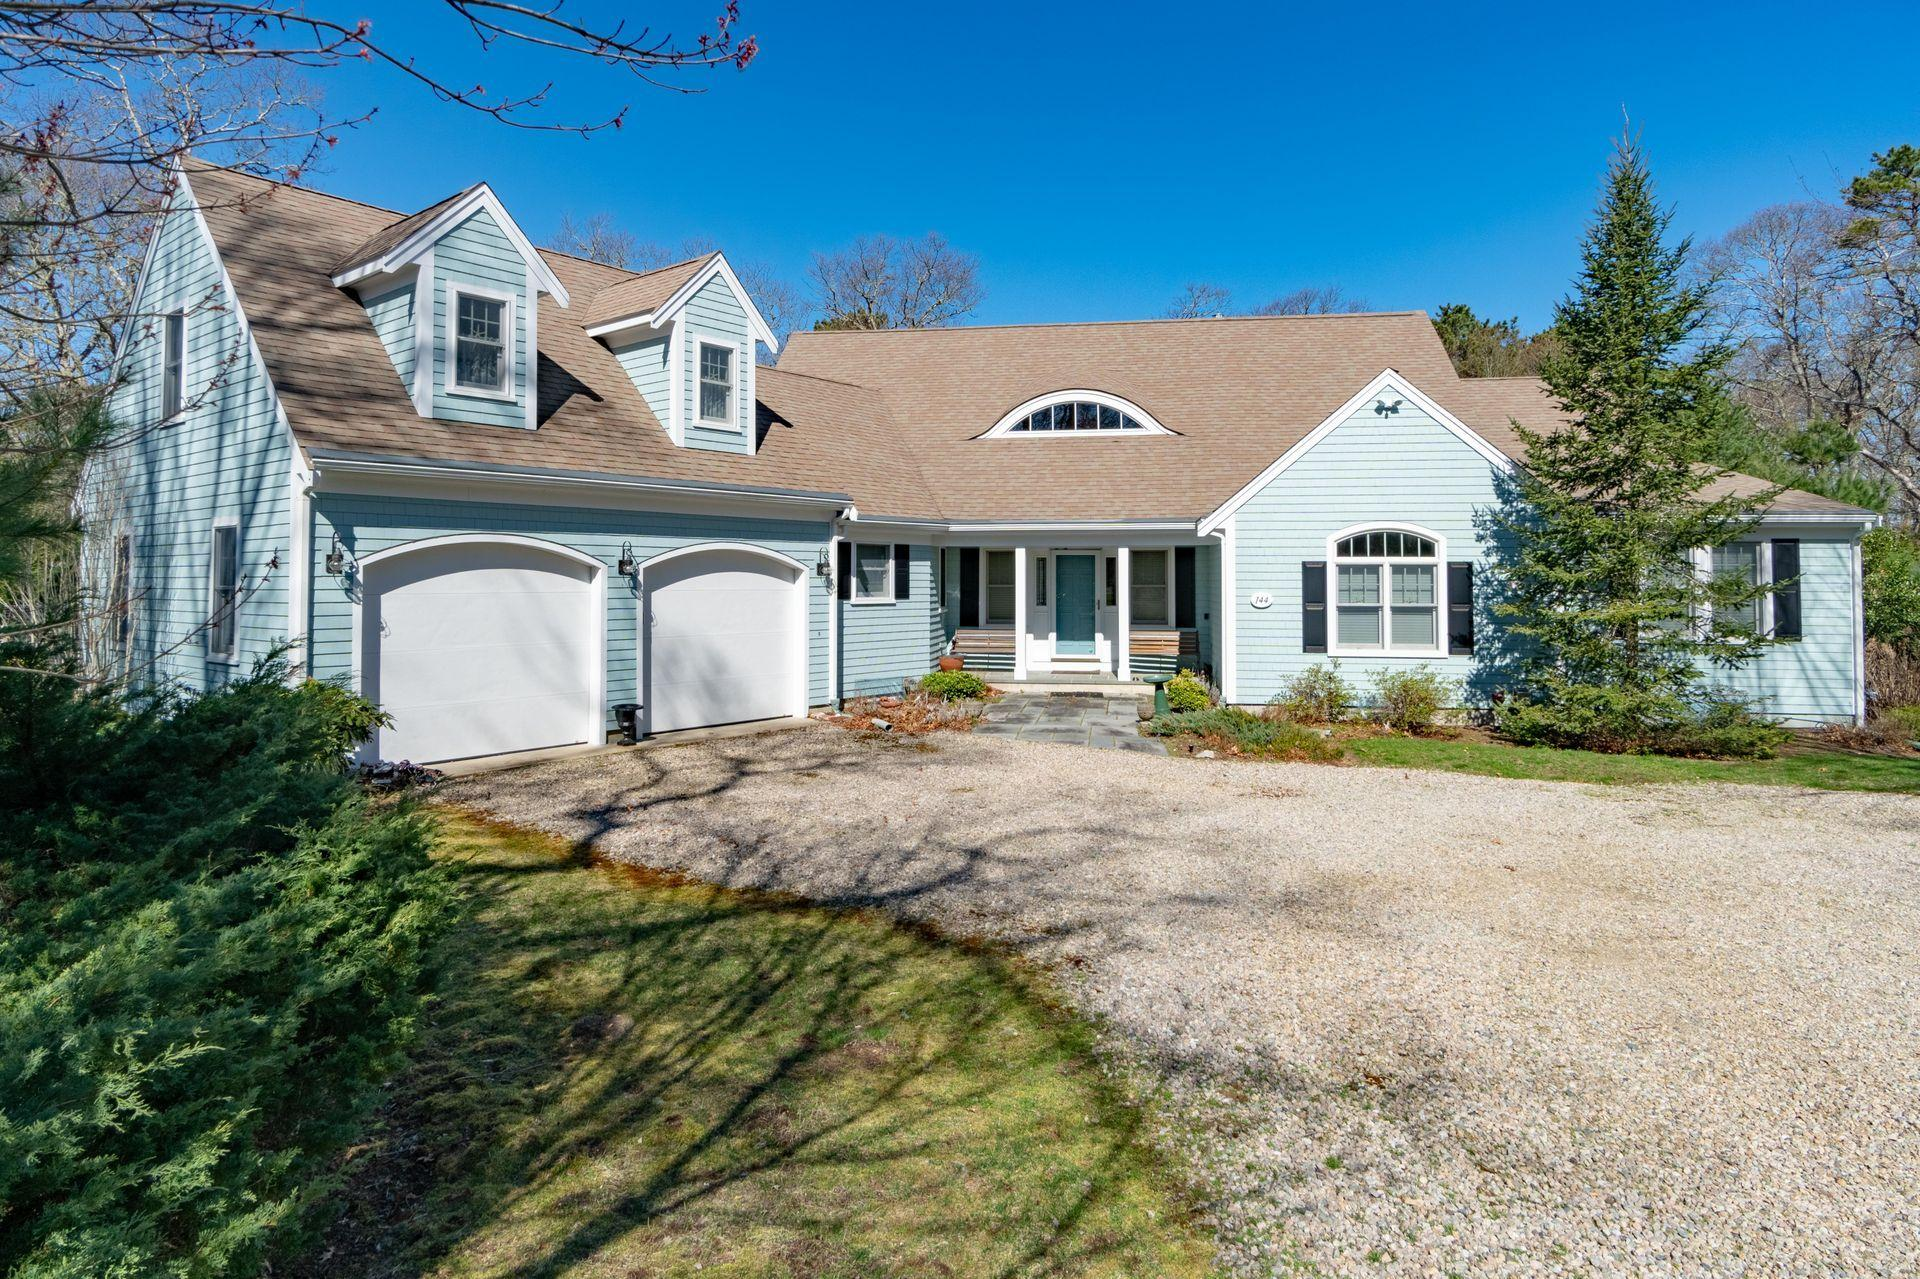 click to view more details 144 Tonset Road, Orleans, MA 02653